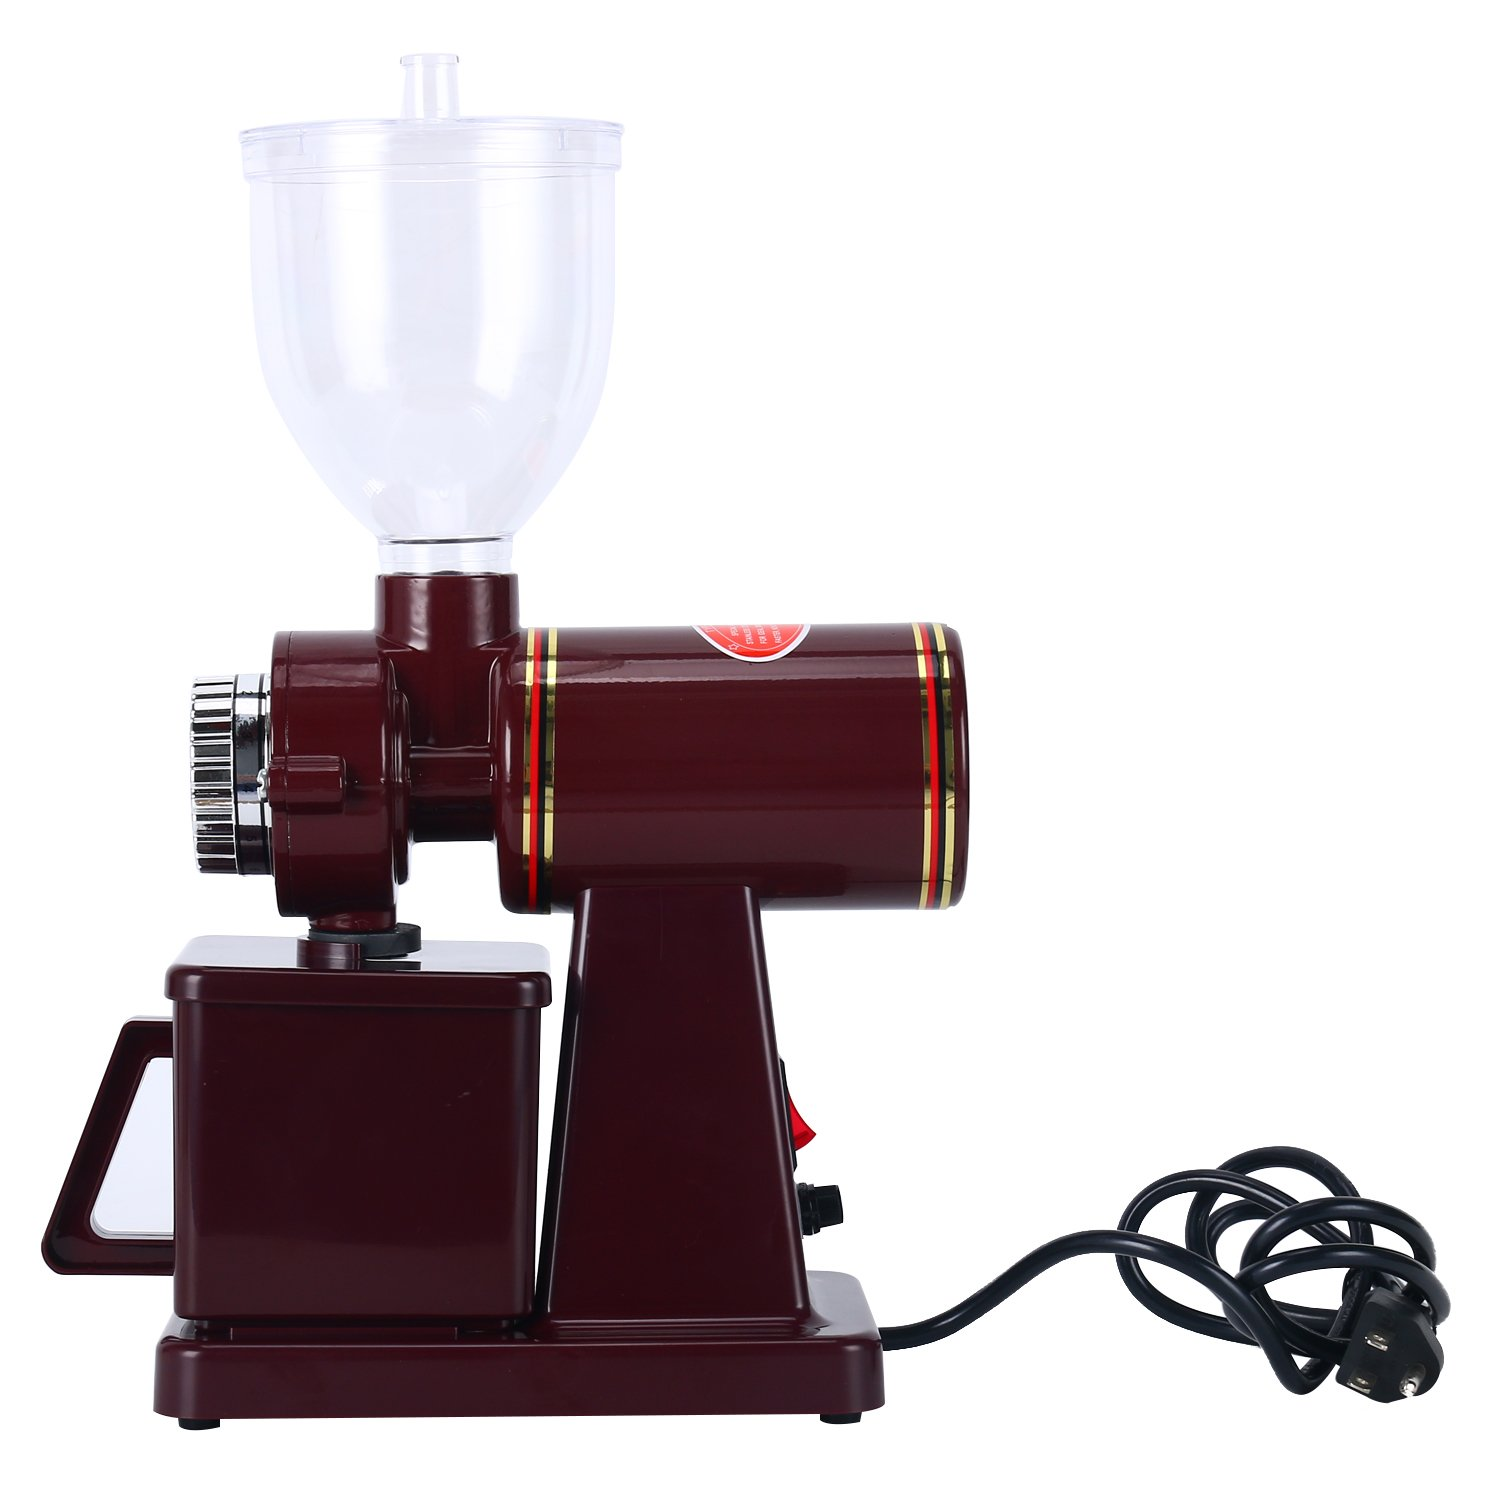 Adjustable High Quality Auto Electric Burr Coffee Grinder for Espresso Coffee Bean, Home Coffee Bean Grinder Machine, Red